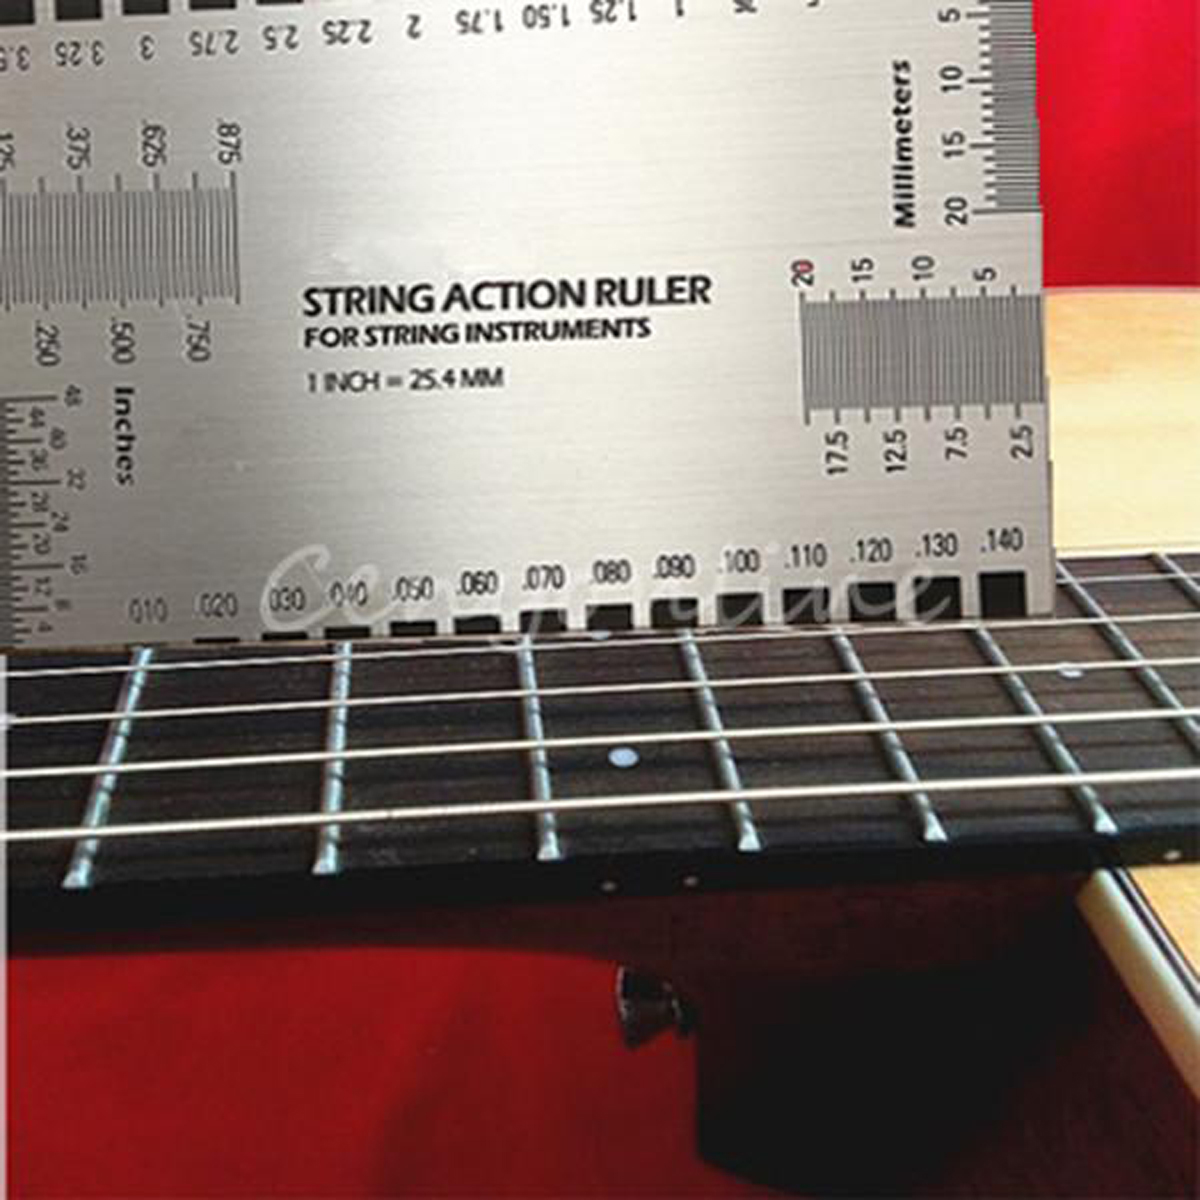 string action gauge ruler guide setup guitar measuring fork bass luthier tool ebay. Black Bedroom Furniture Sets. Home Design Ideas